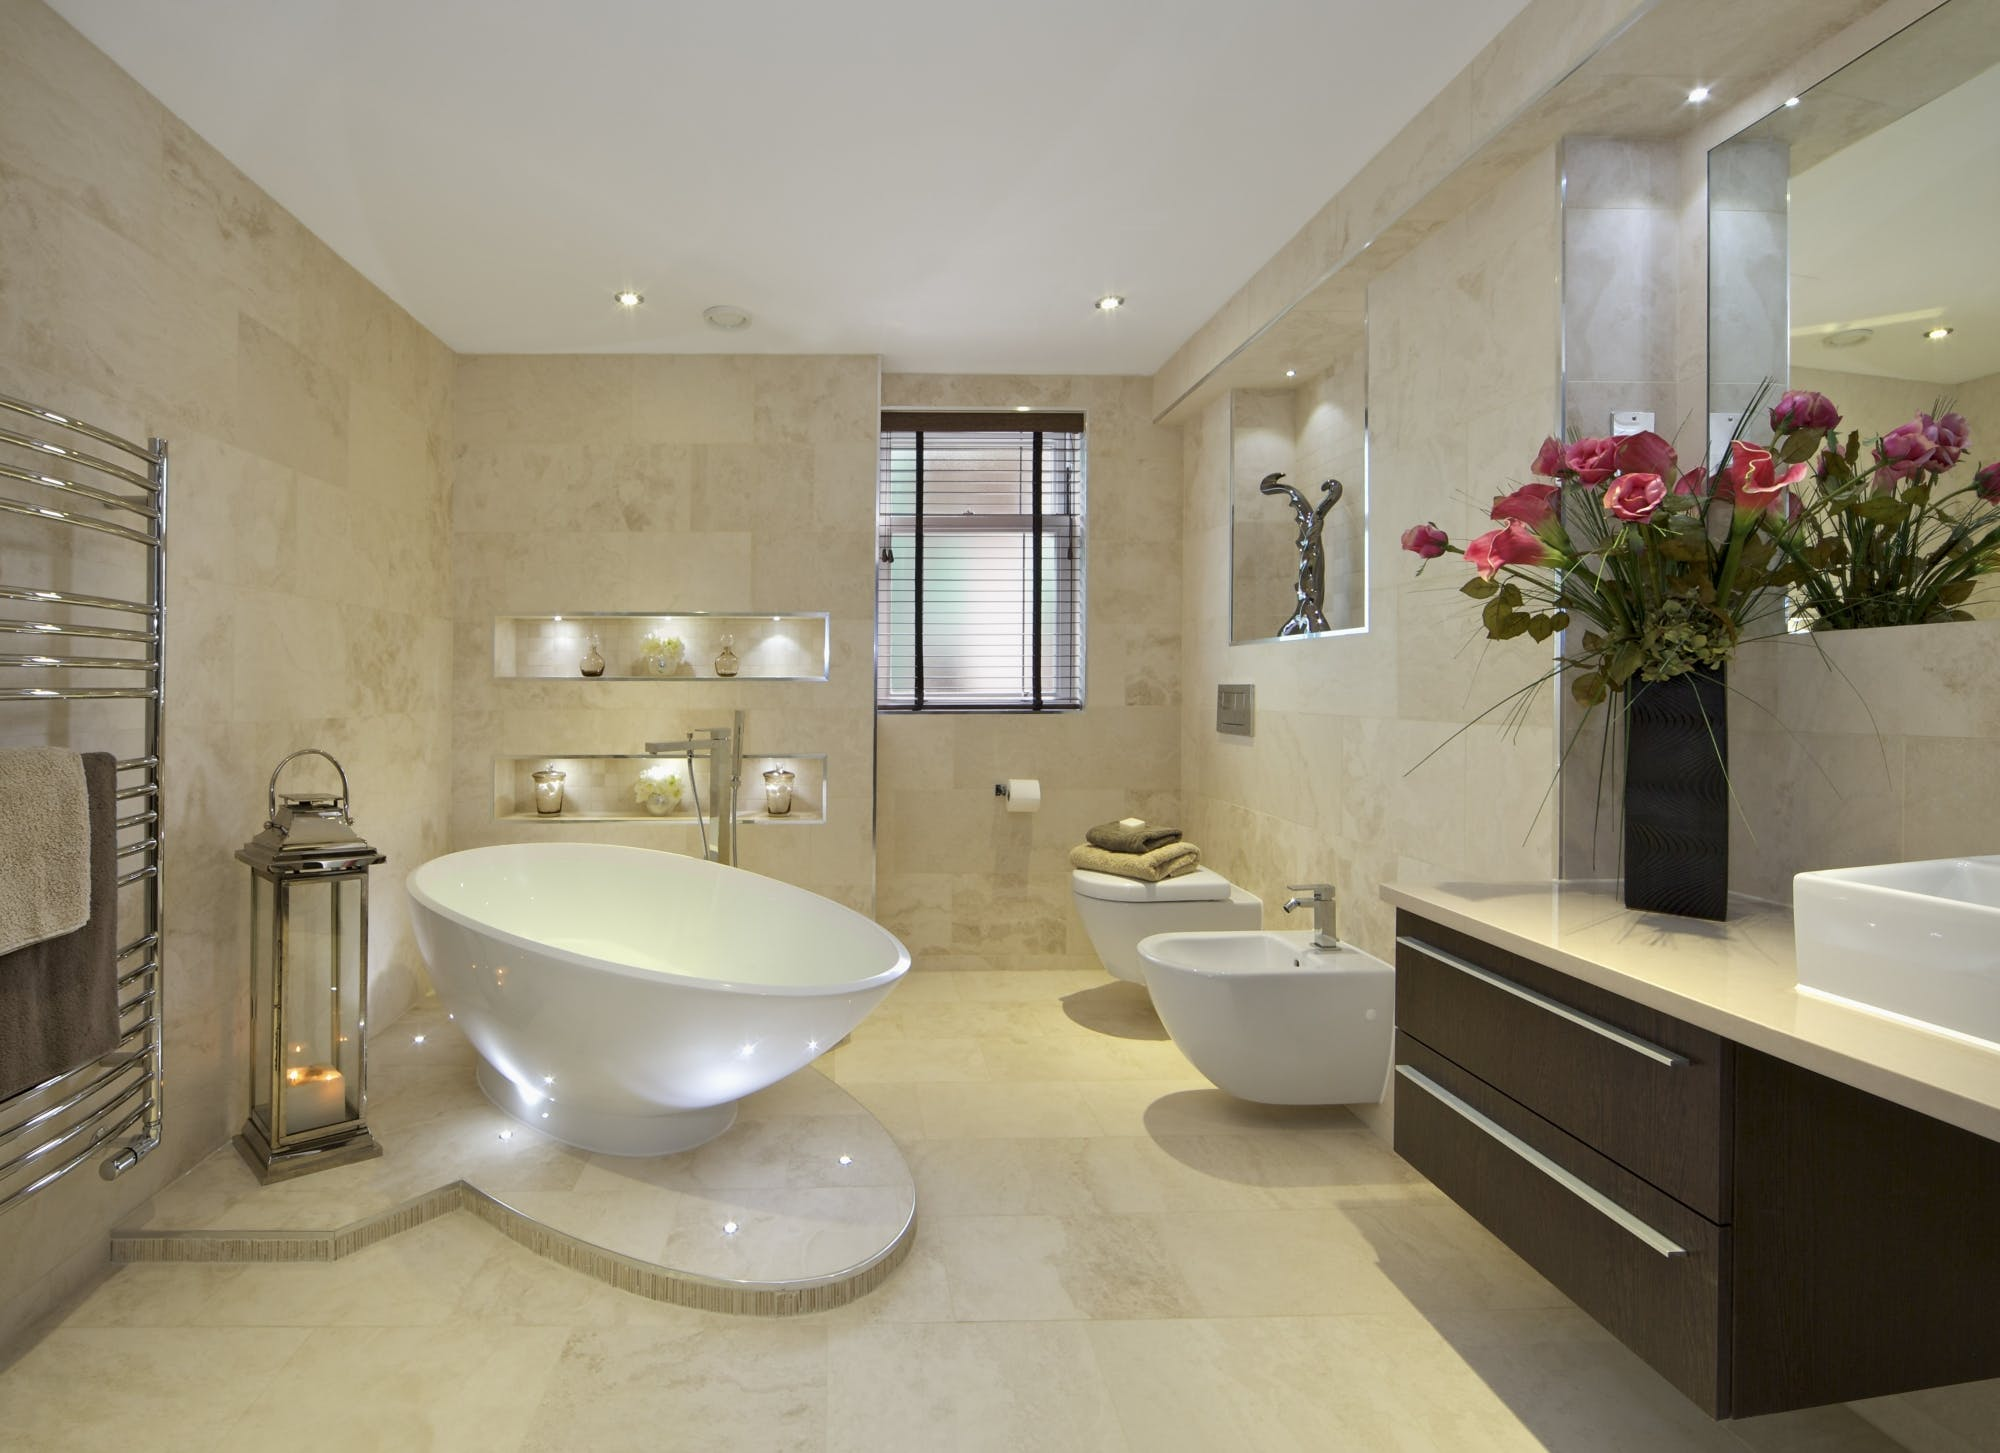 Brilliant Bathroom Renovations Making A New Property Feel Like Home Interior Design Ideas Jittwwsoteloinfo